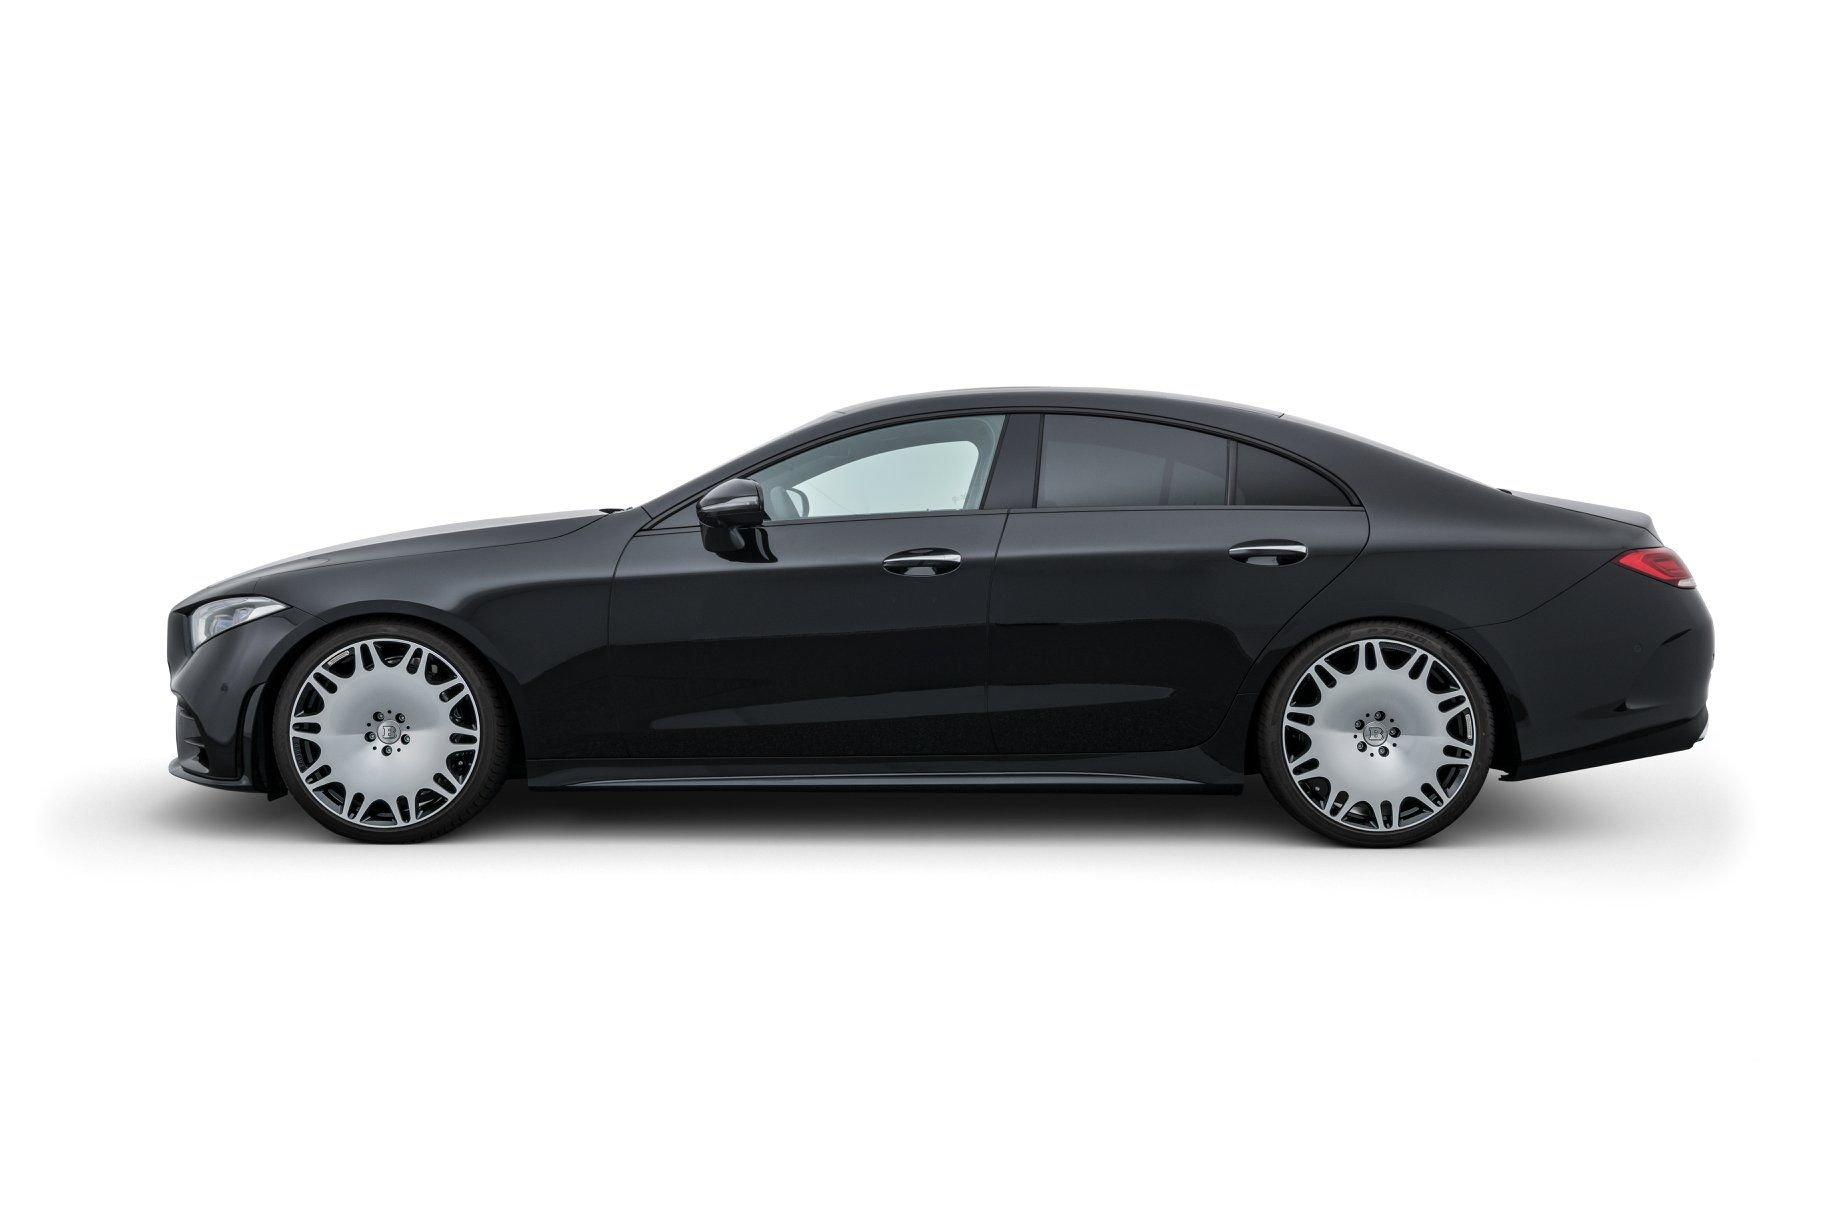 Mercedes-Benz CLS D40 by Brabus - Mercedes-Benz CLS D40 by Brabus